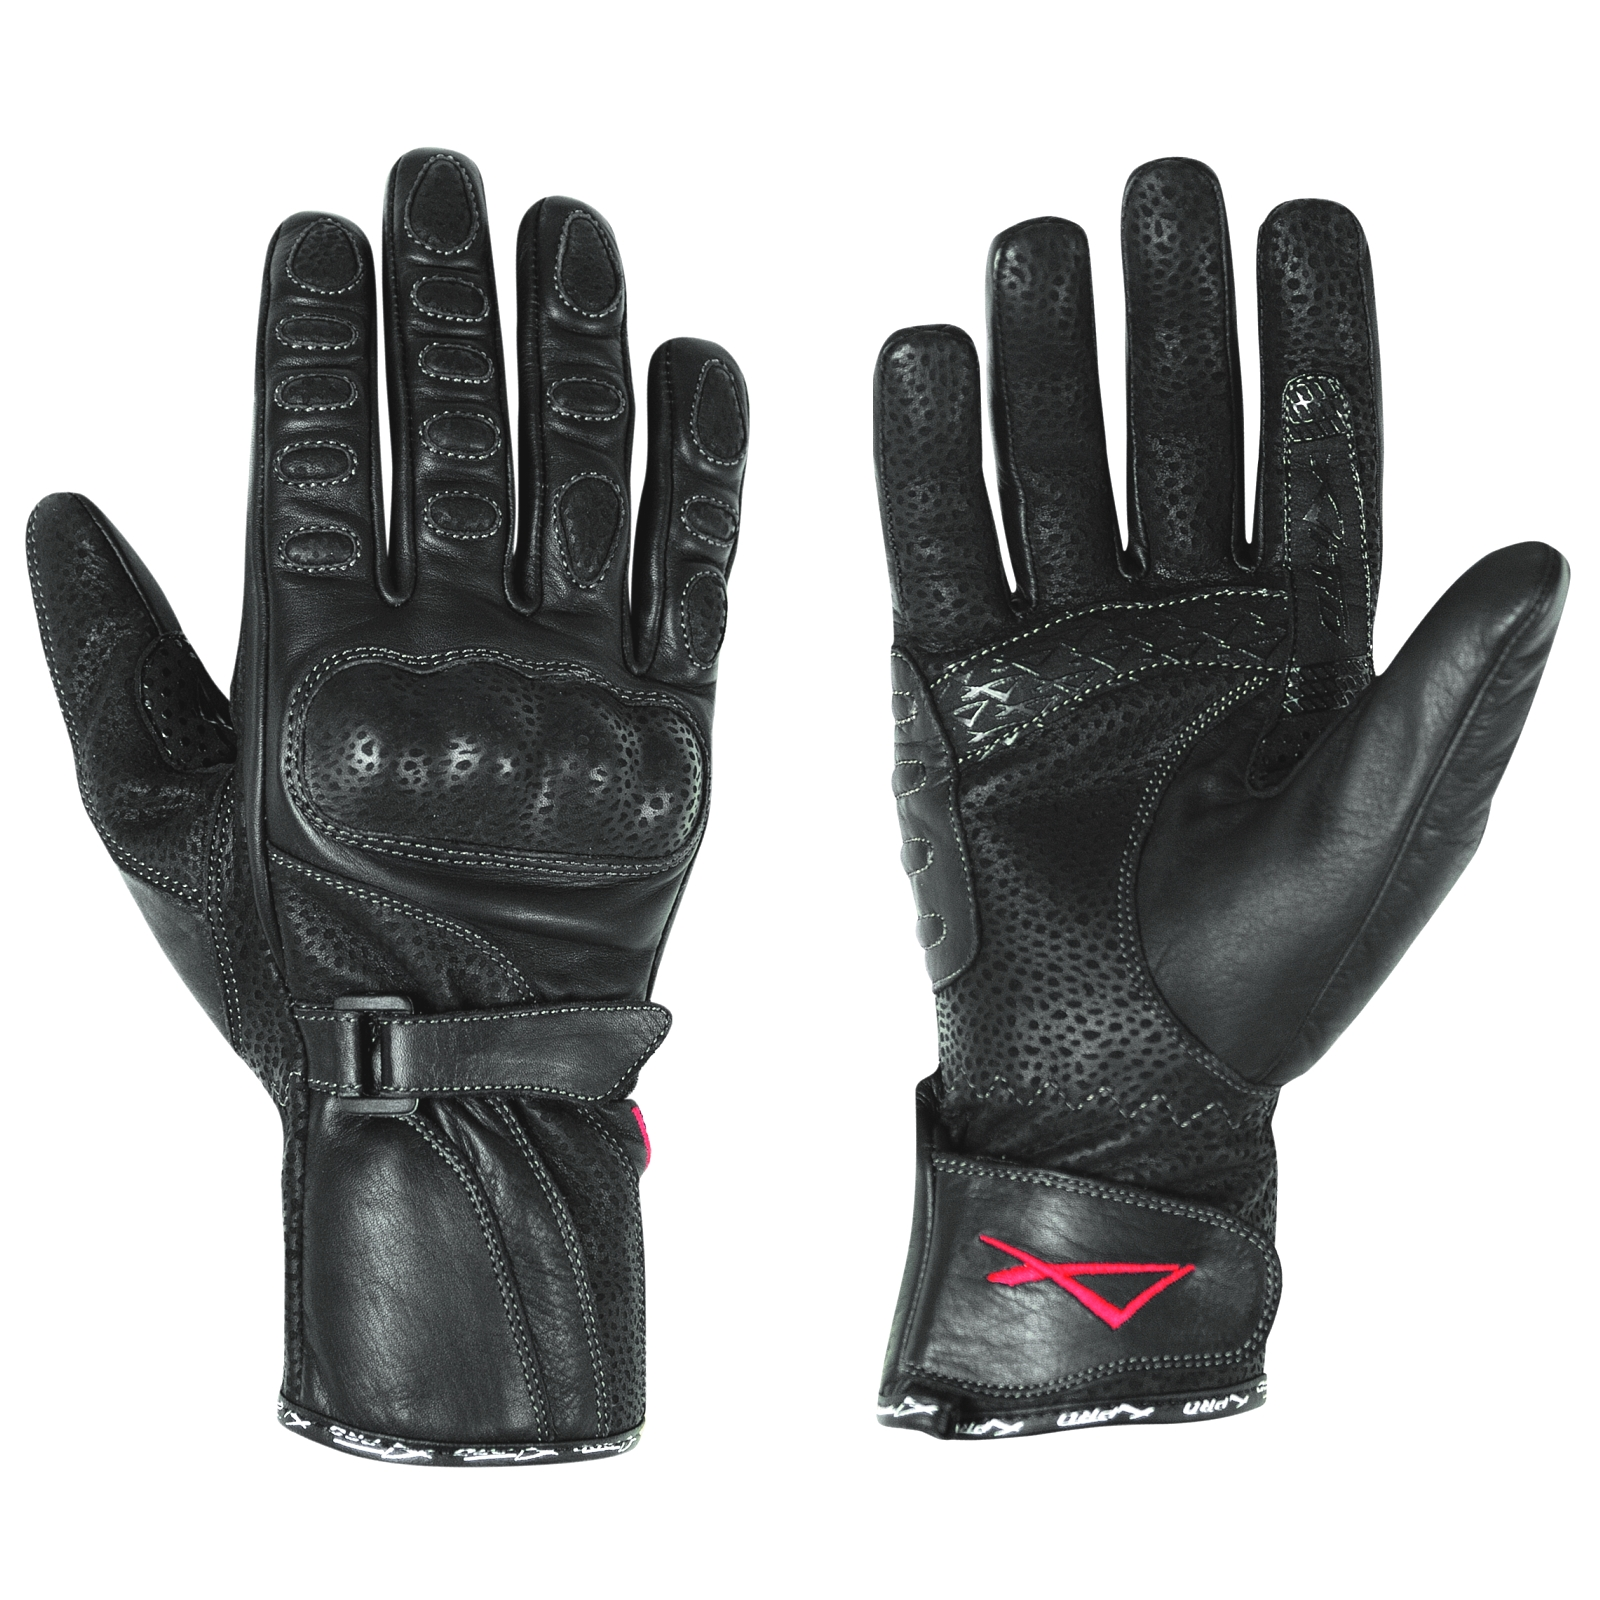 gants longs femme cuir protections coques moto motard. Black Bedroom Furniture Sets. Home Design Ideas